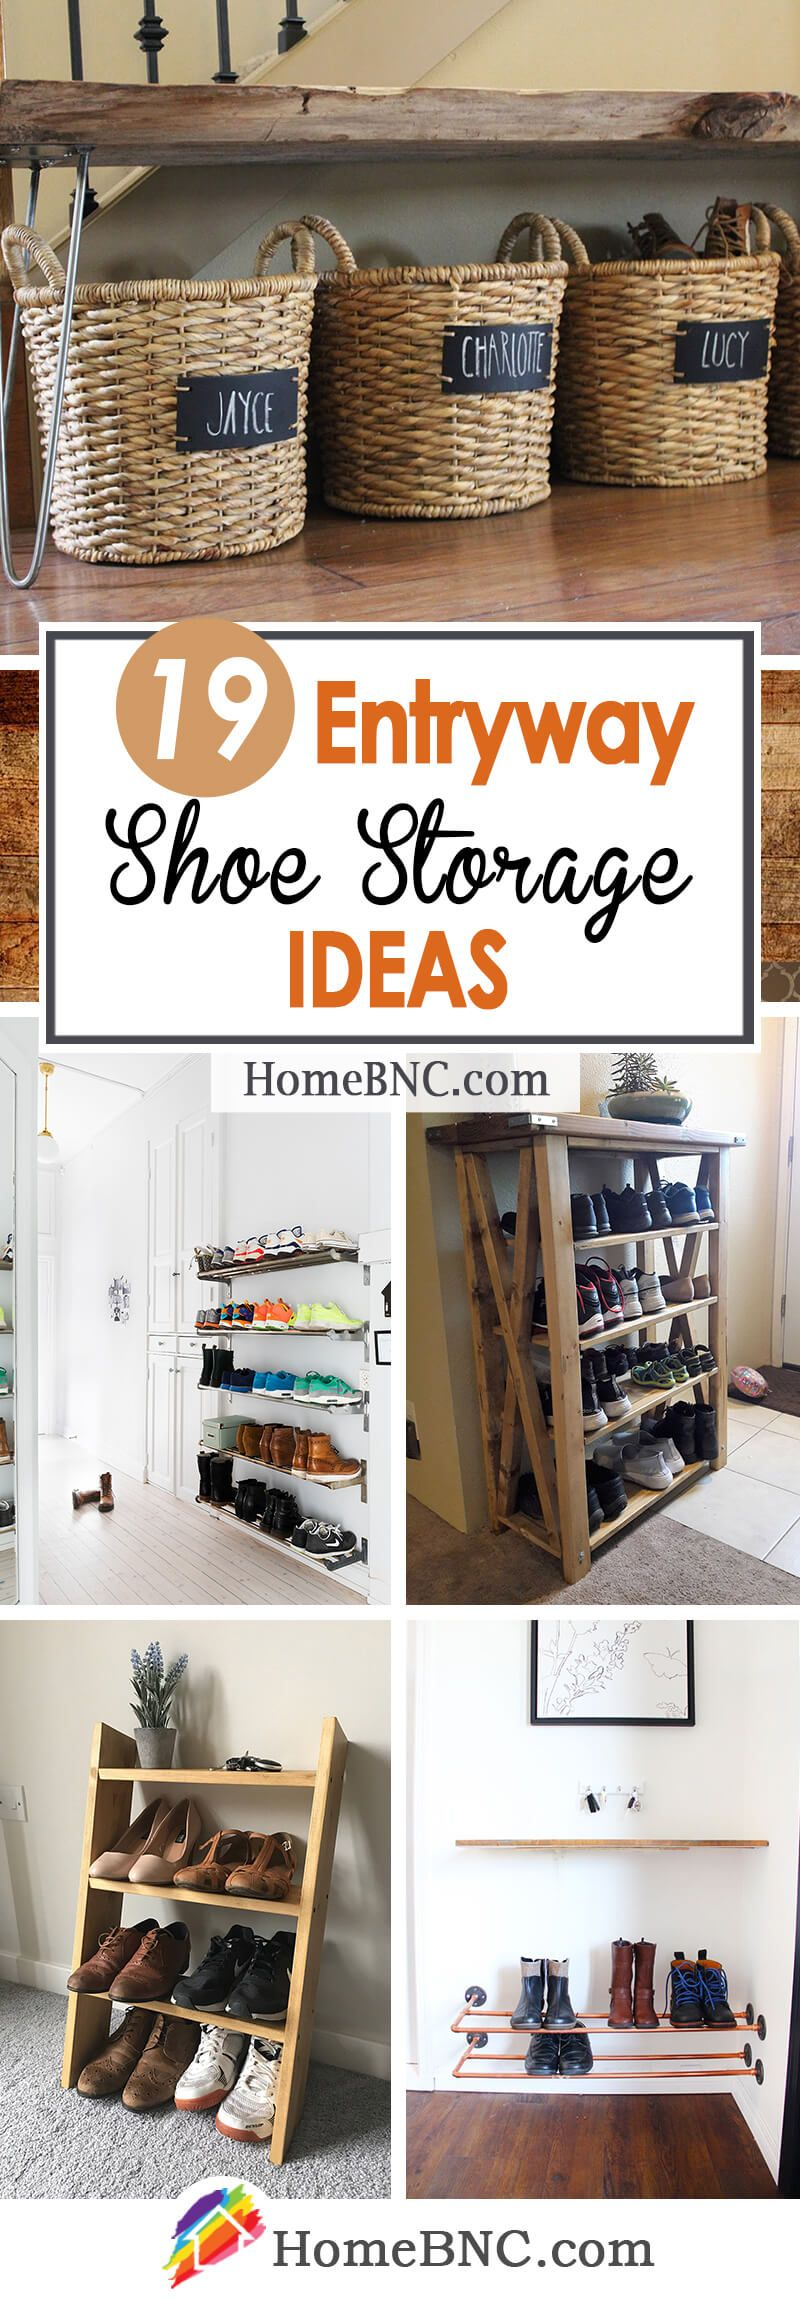 19 Clever Entryway Shoe Storage Ideas To Stop The Clutter Entryway Shoe Storage Entryway Shoe Shoe Storage Small Space